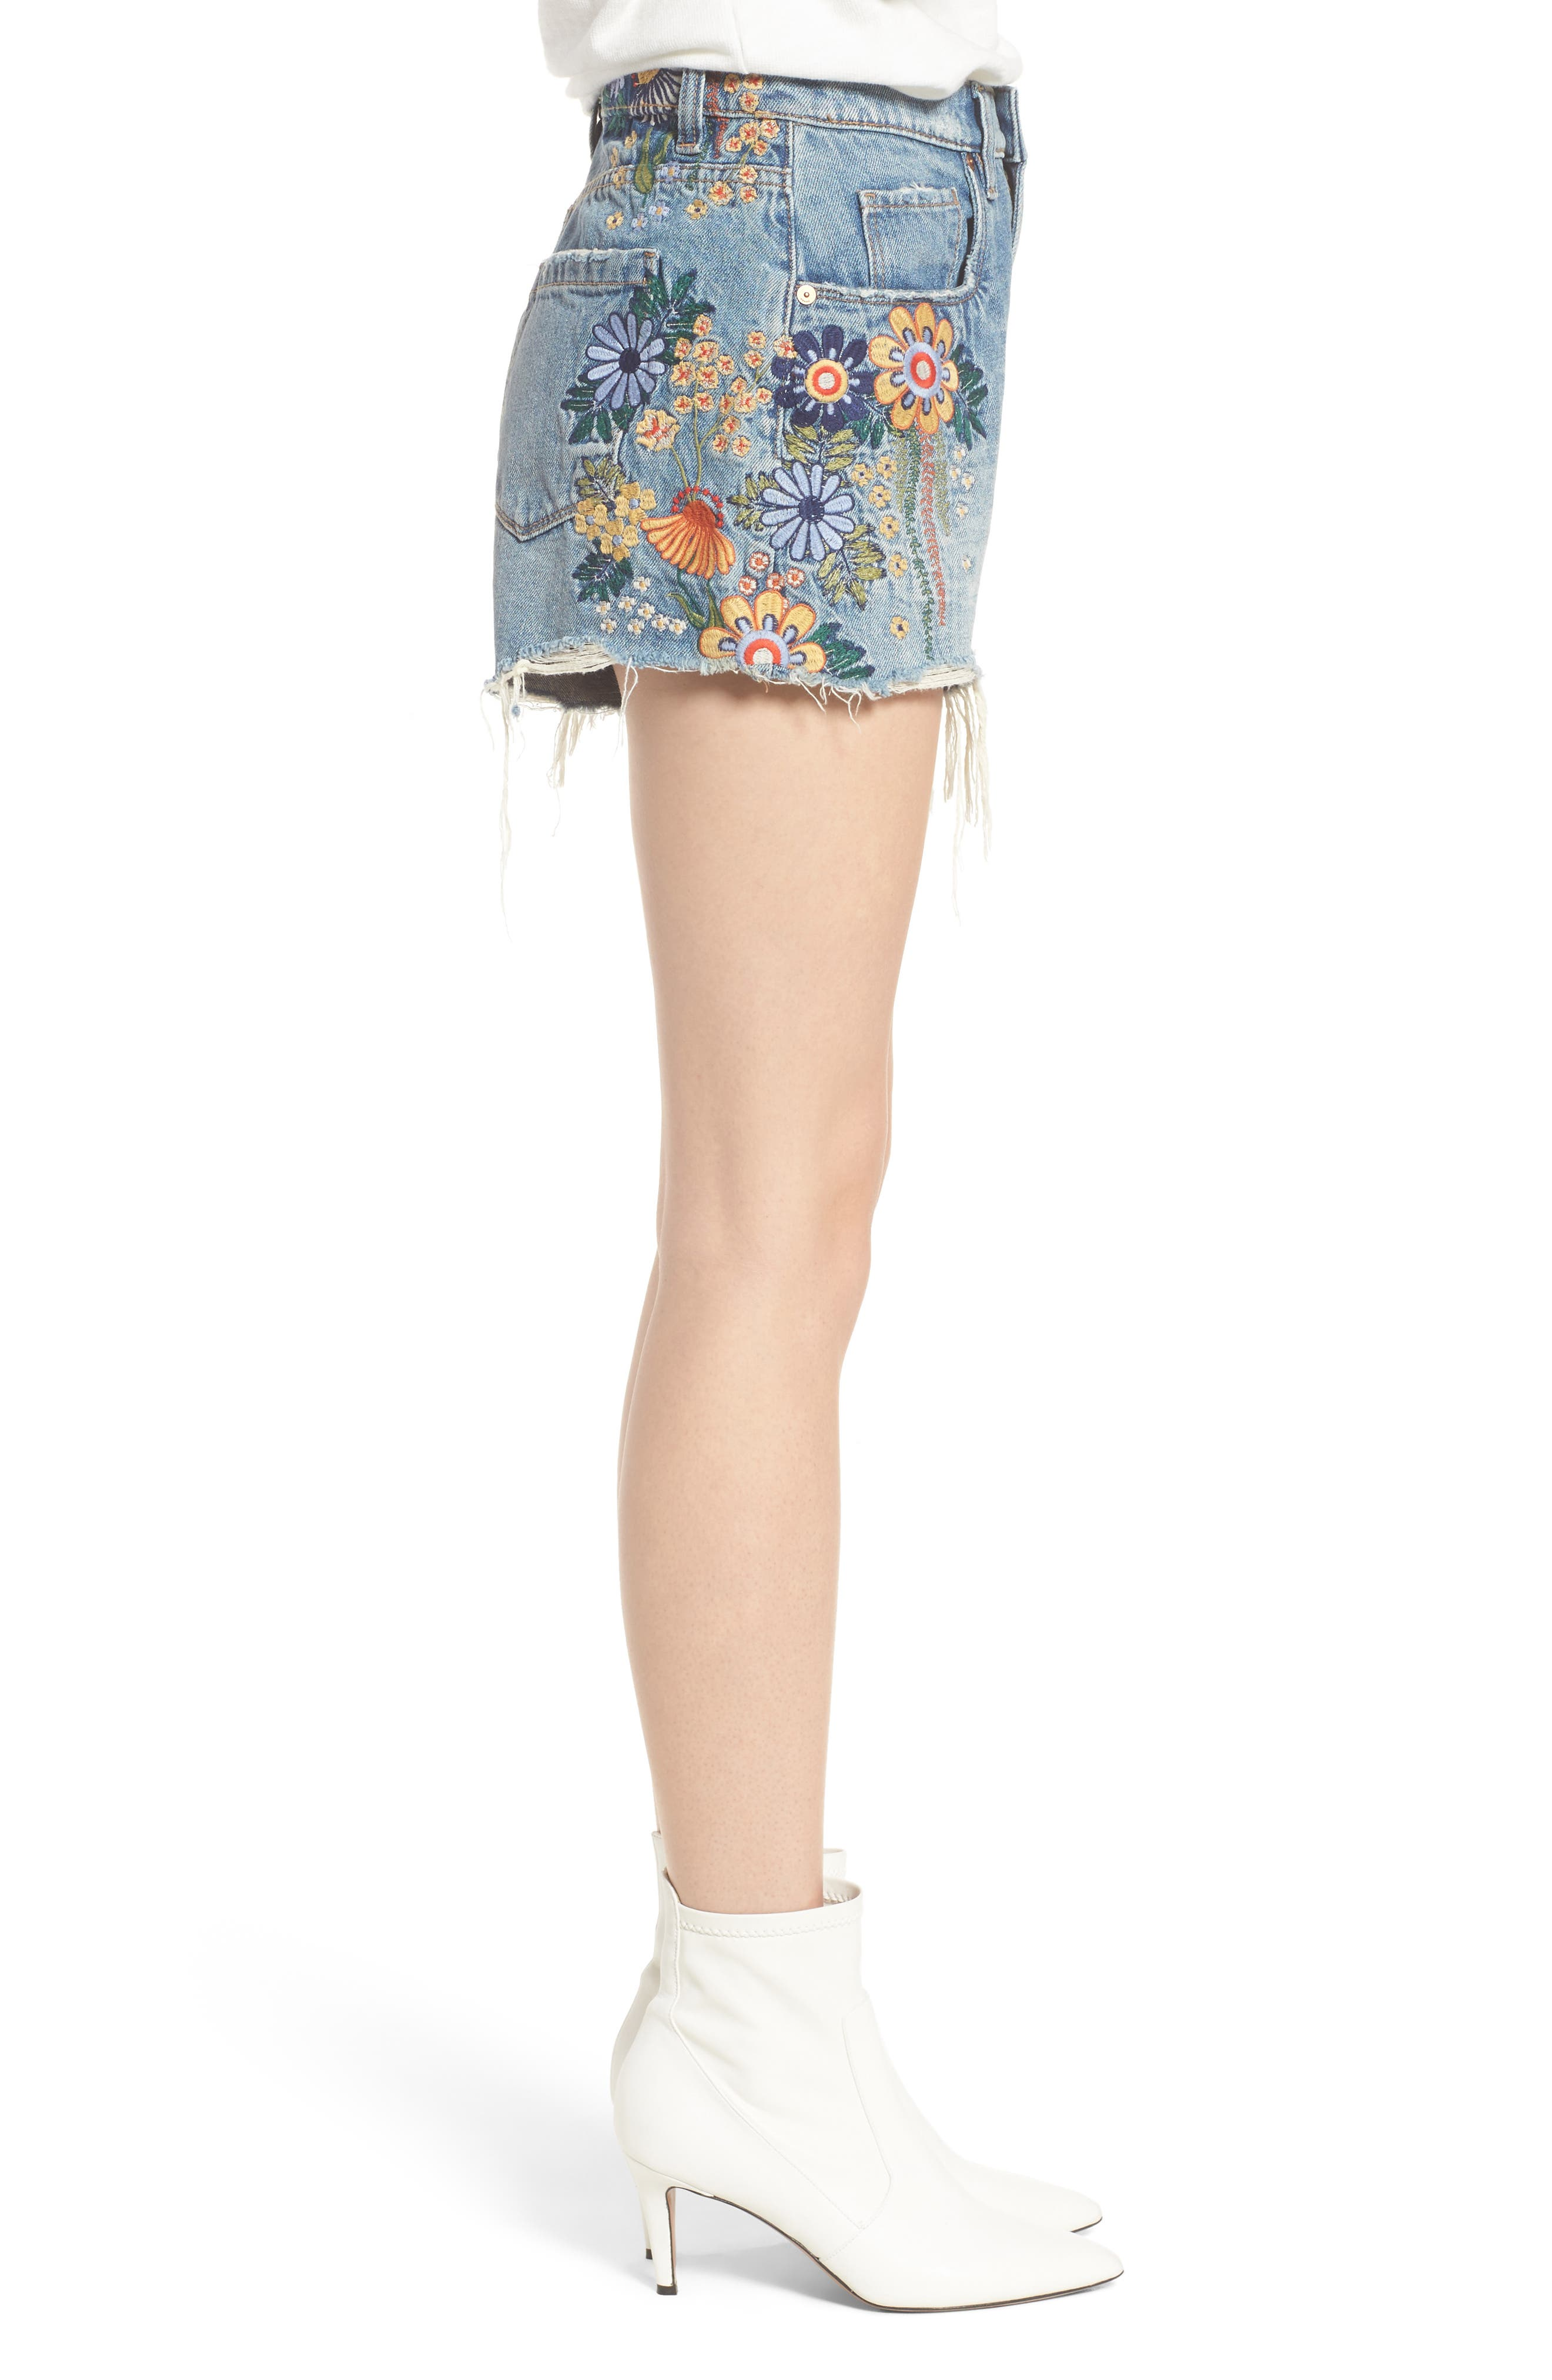 Sonic Bloom Embroidered Denim Shorts,                             Alternate thumbnail 3, color,                             400